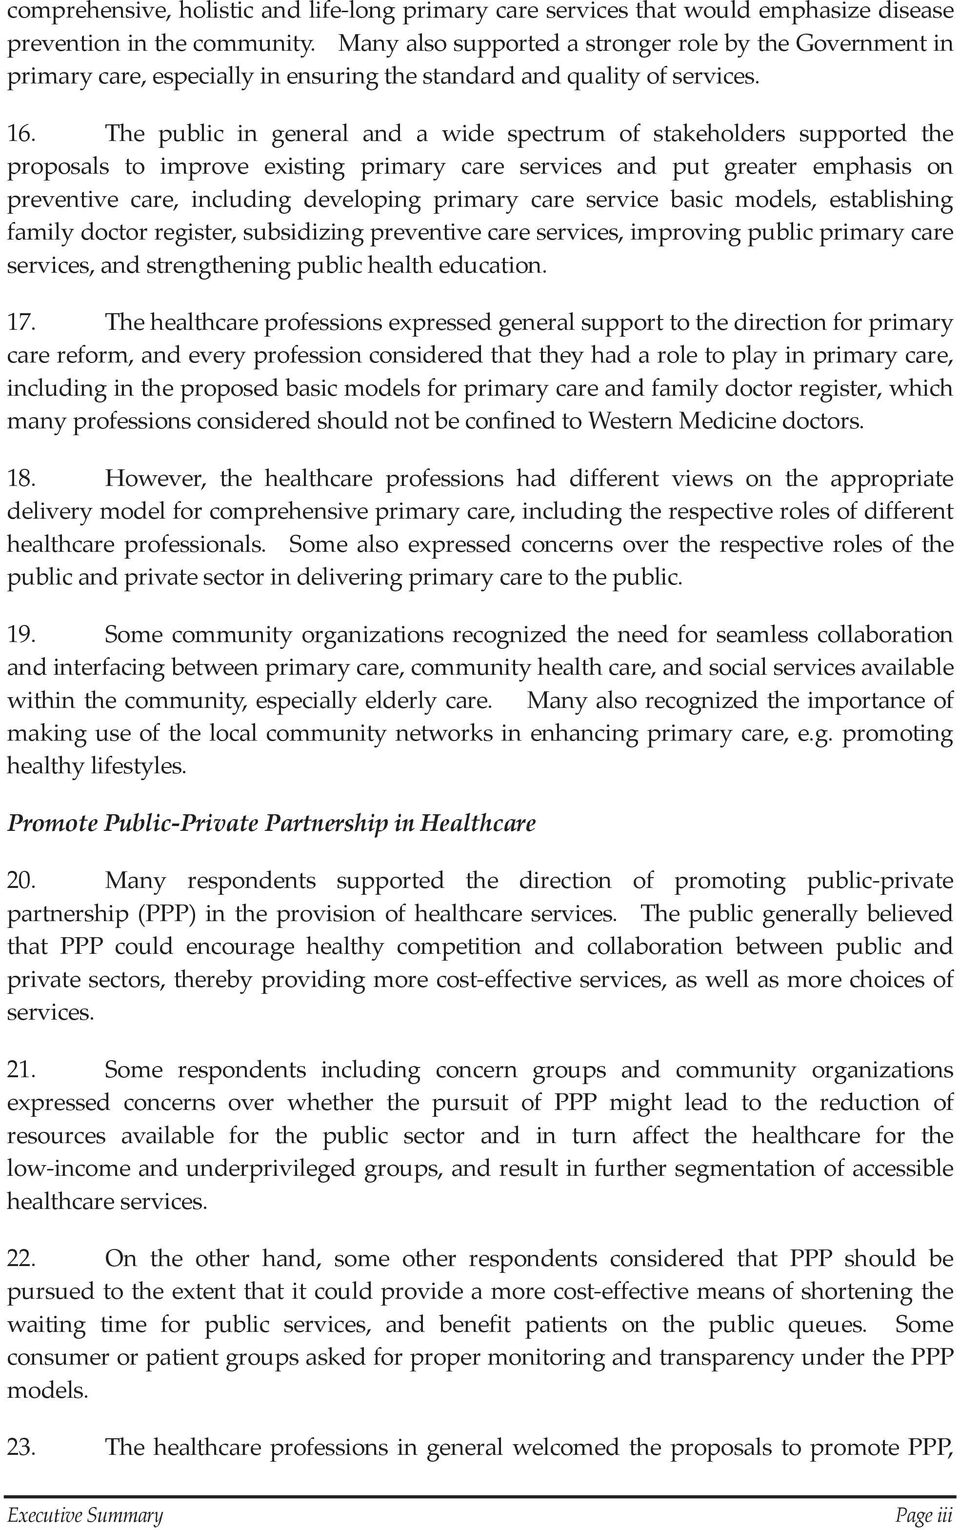 The public in general and a wide spectrum of stakeholders supported the proposals to improve existing primary care services and put greater emphasis on preventive care, including developing primary